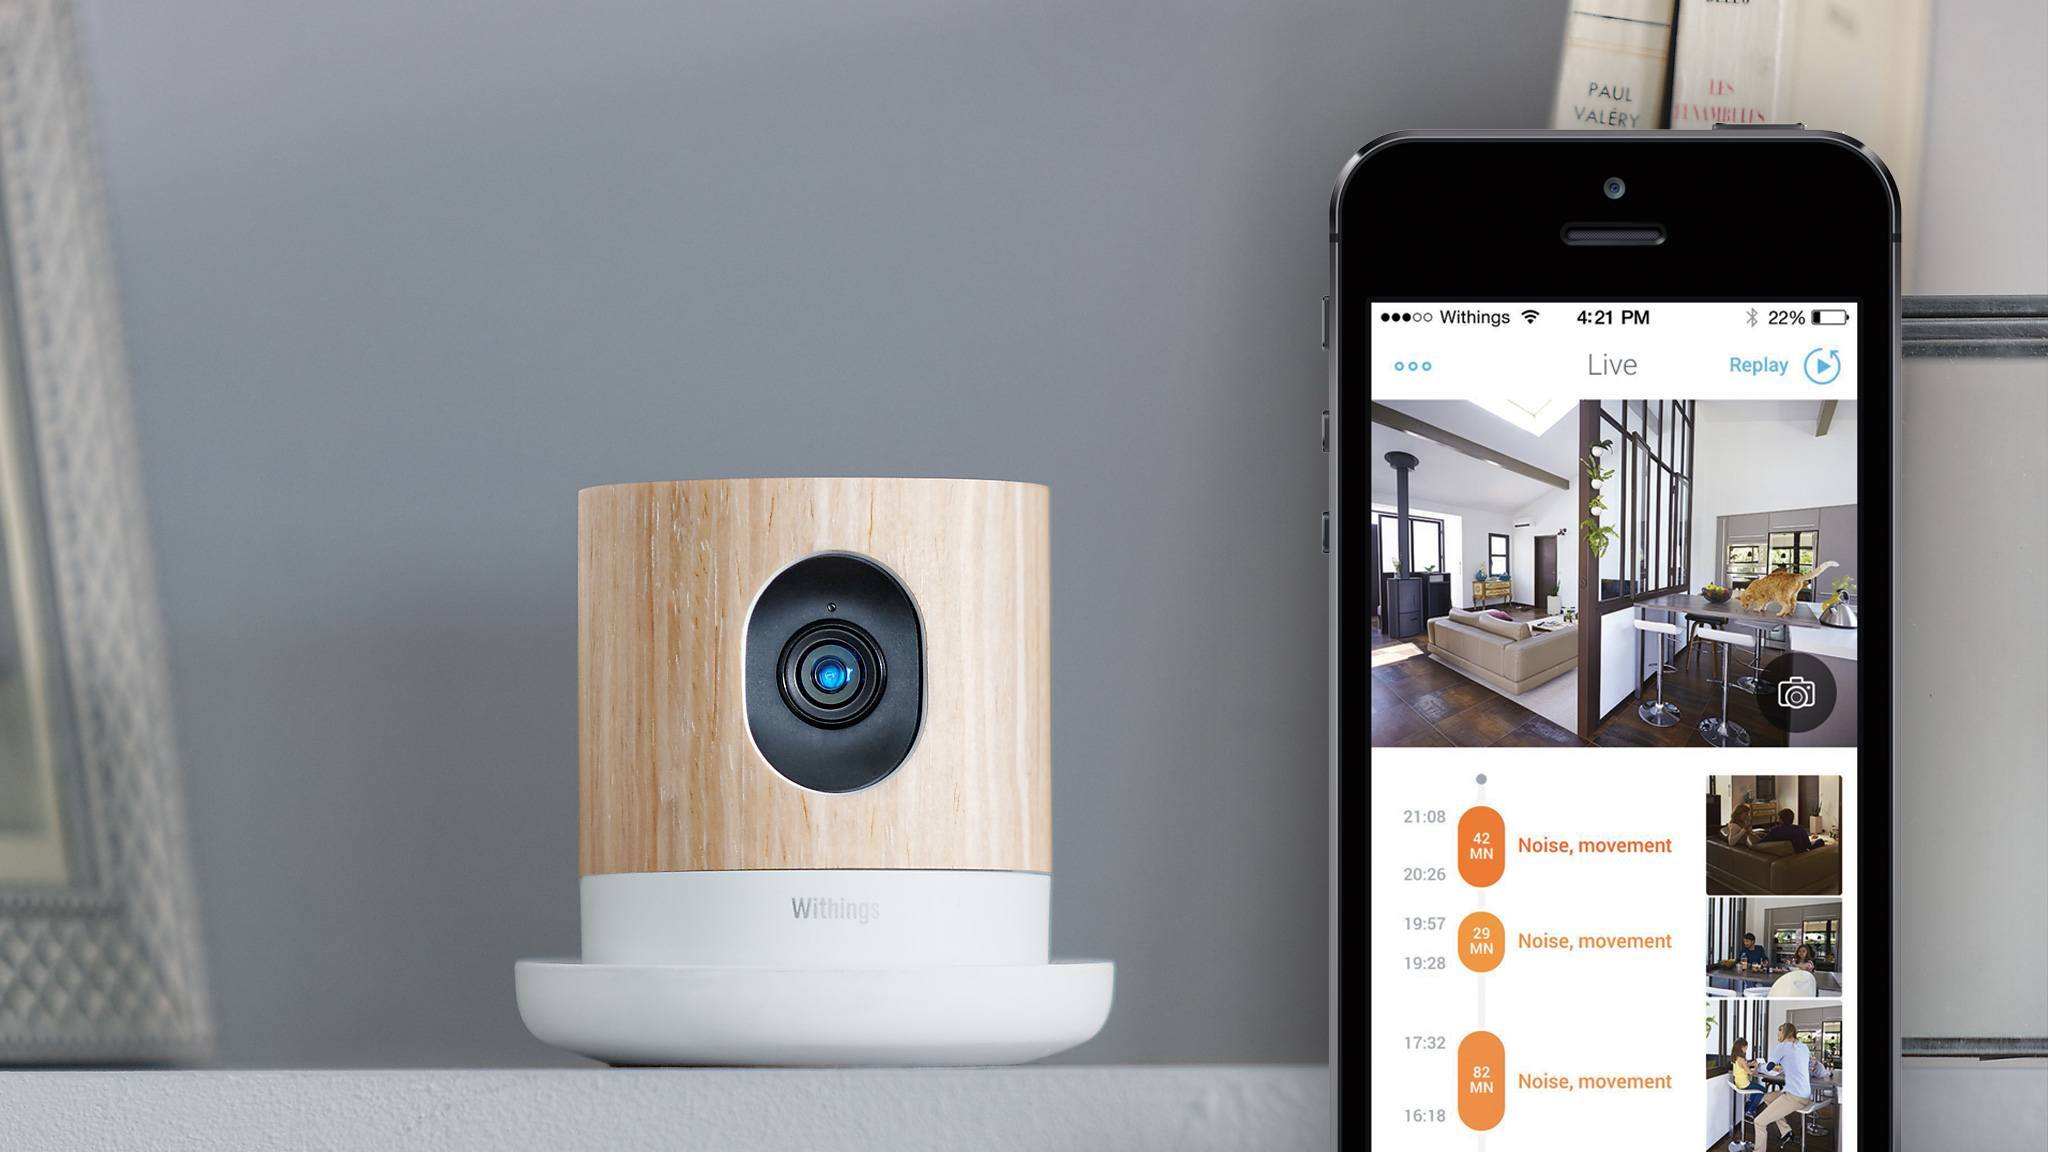 test de withings home une cam ra de surveillance revue et corrig e maison et domotique. Black Bedroom Furniture Sets. Home Design Ideas